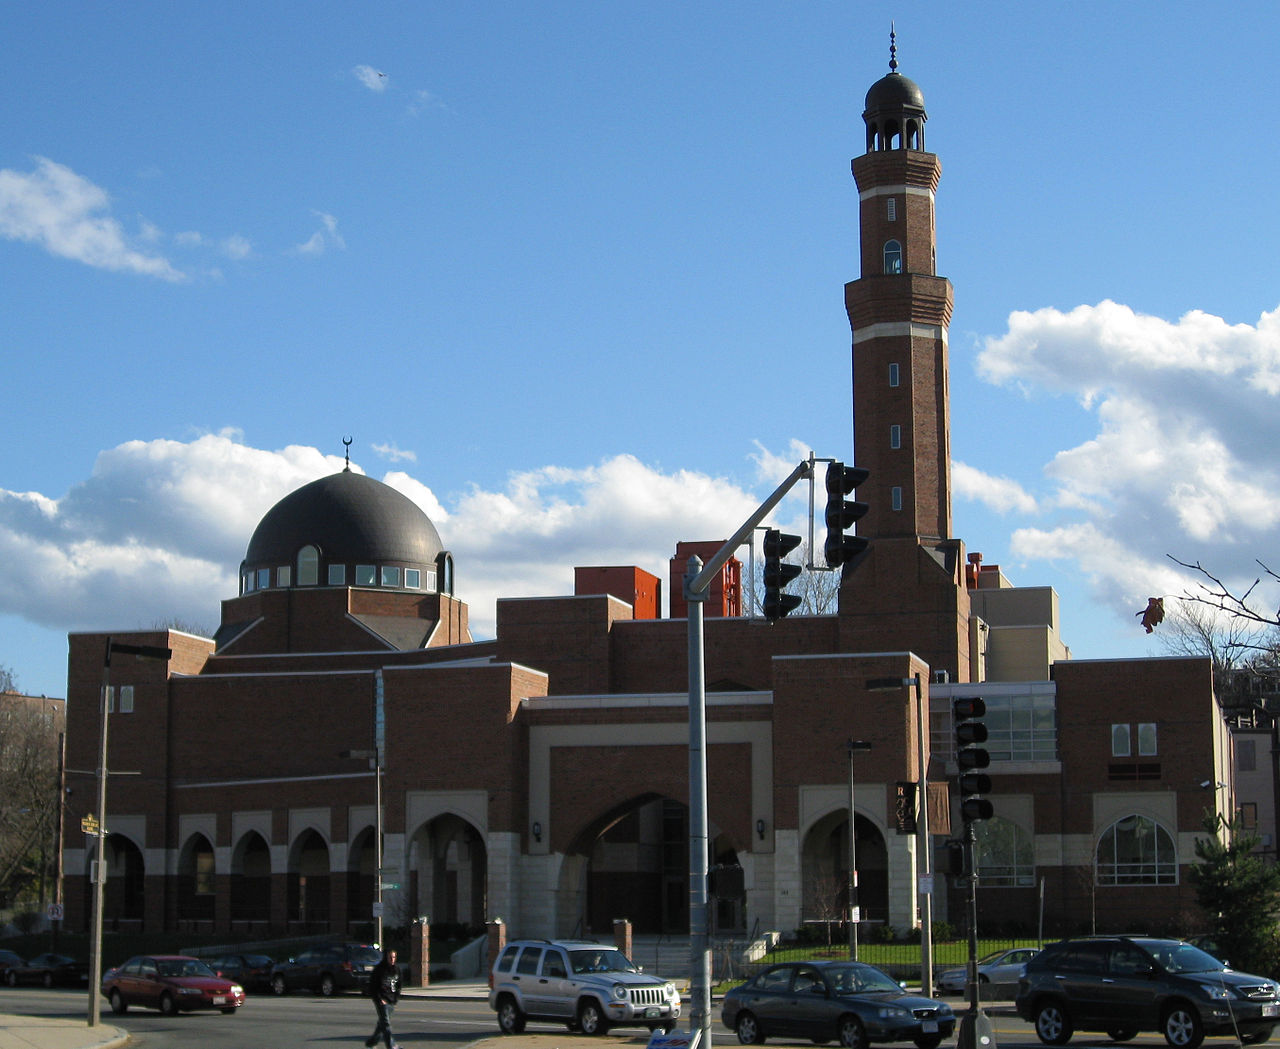 The Islamic Society of Boston Cultural Center in Roxbury opened in 2009.